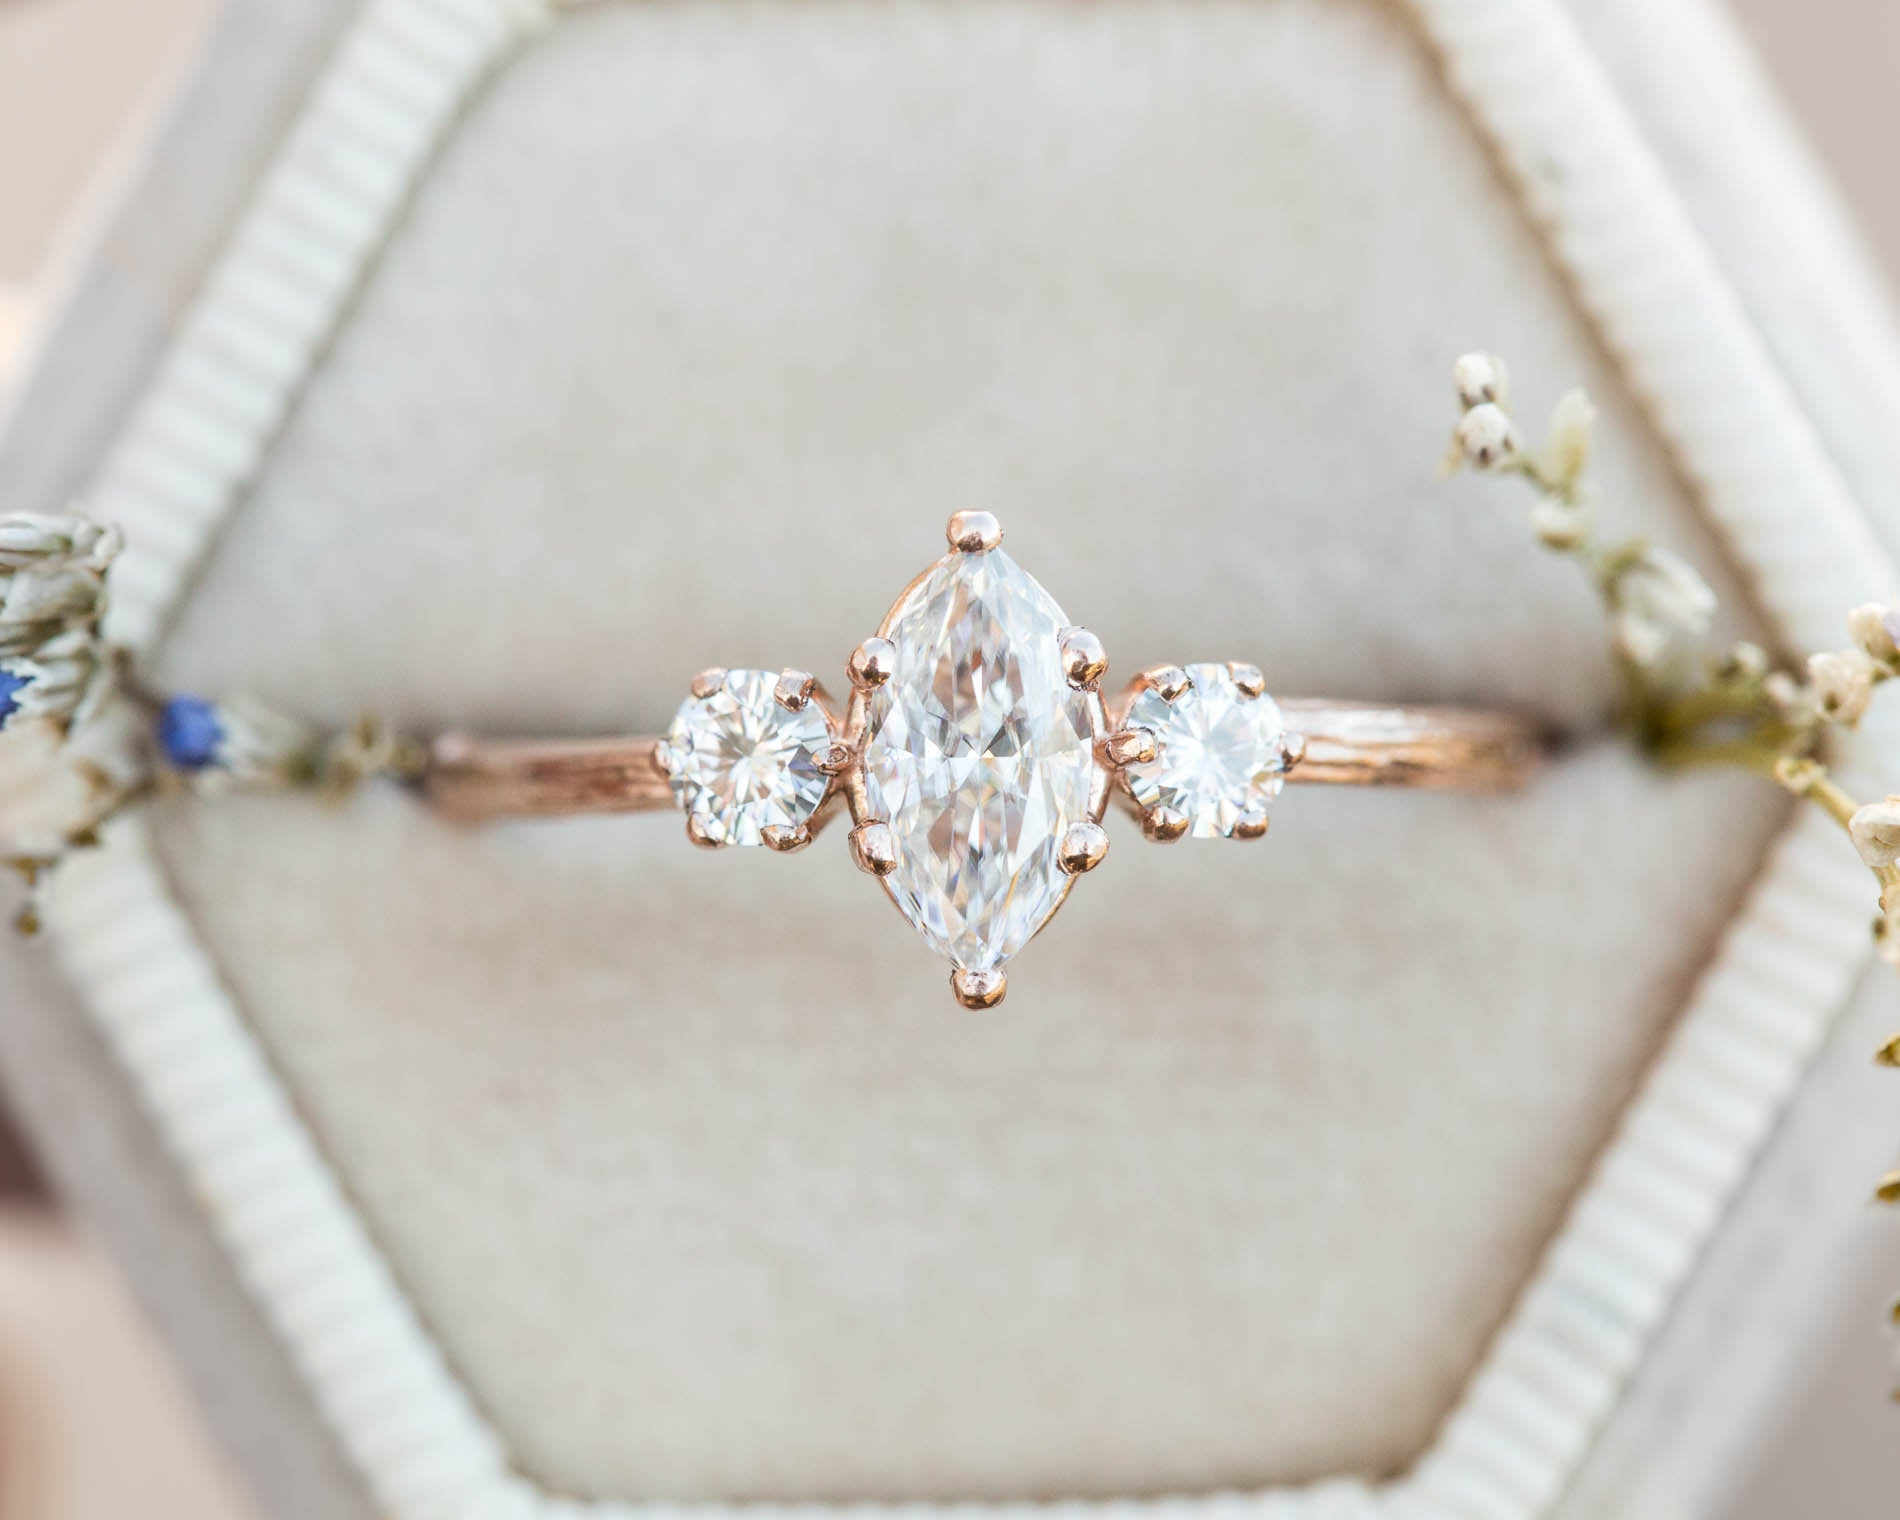 Marquise moissanite twig engagement ring, three stone engagement ring, moissanite ring, 14k gold ring, marquise twig ring, twig engagement